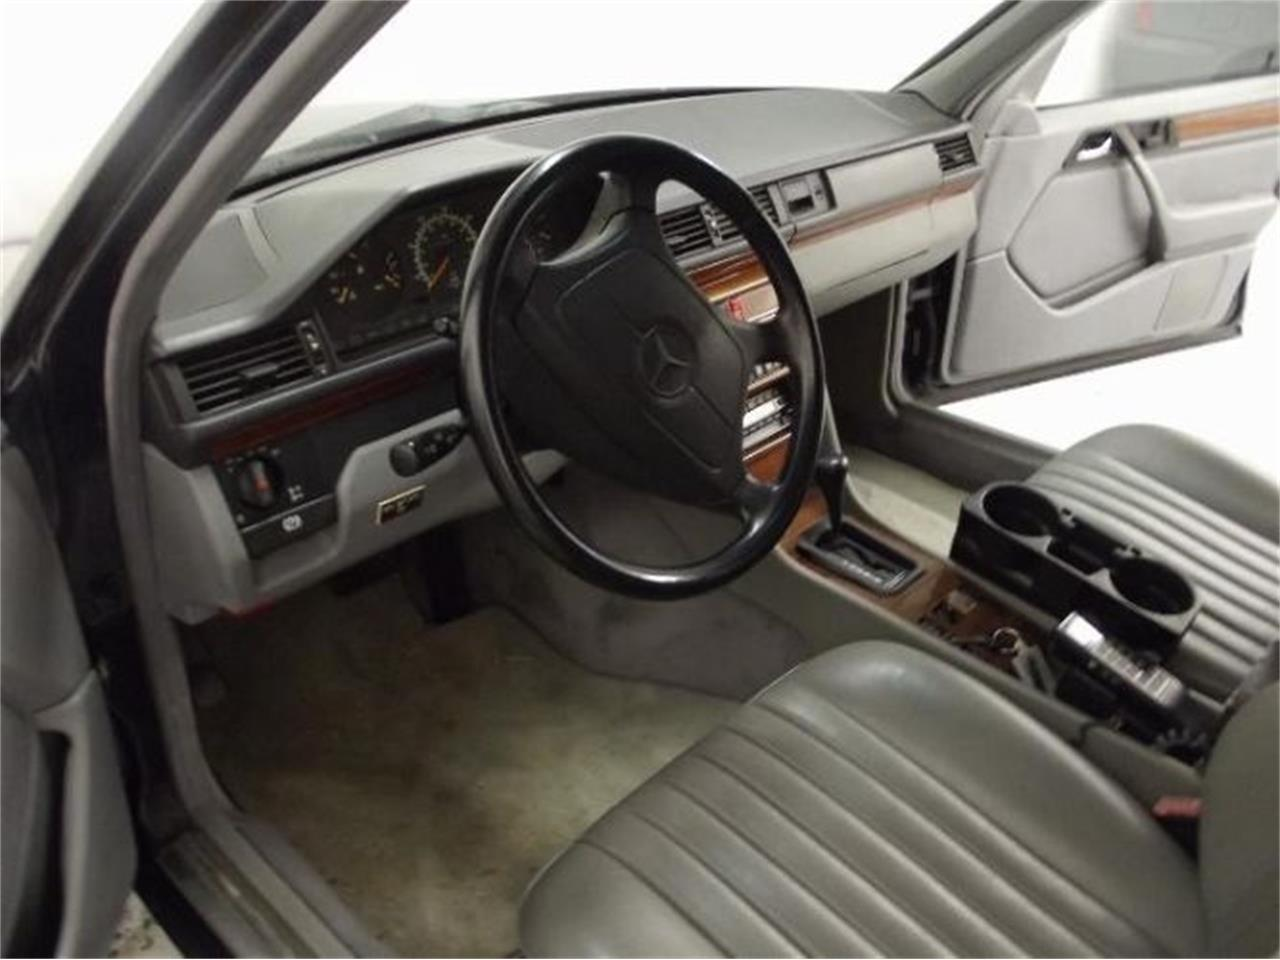 Large Picture of '92 Mercedes-Benz 300D - $10,395.00 Offered by Classic Car Deals - Q4A7